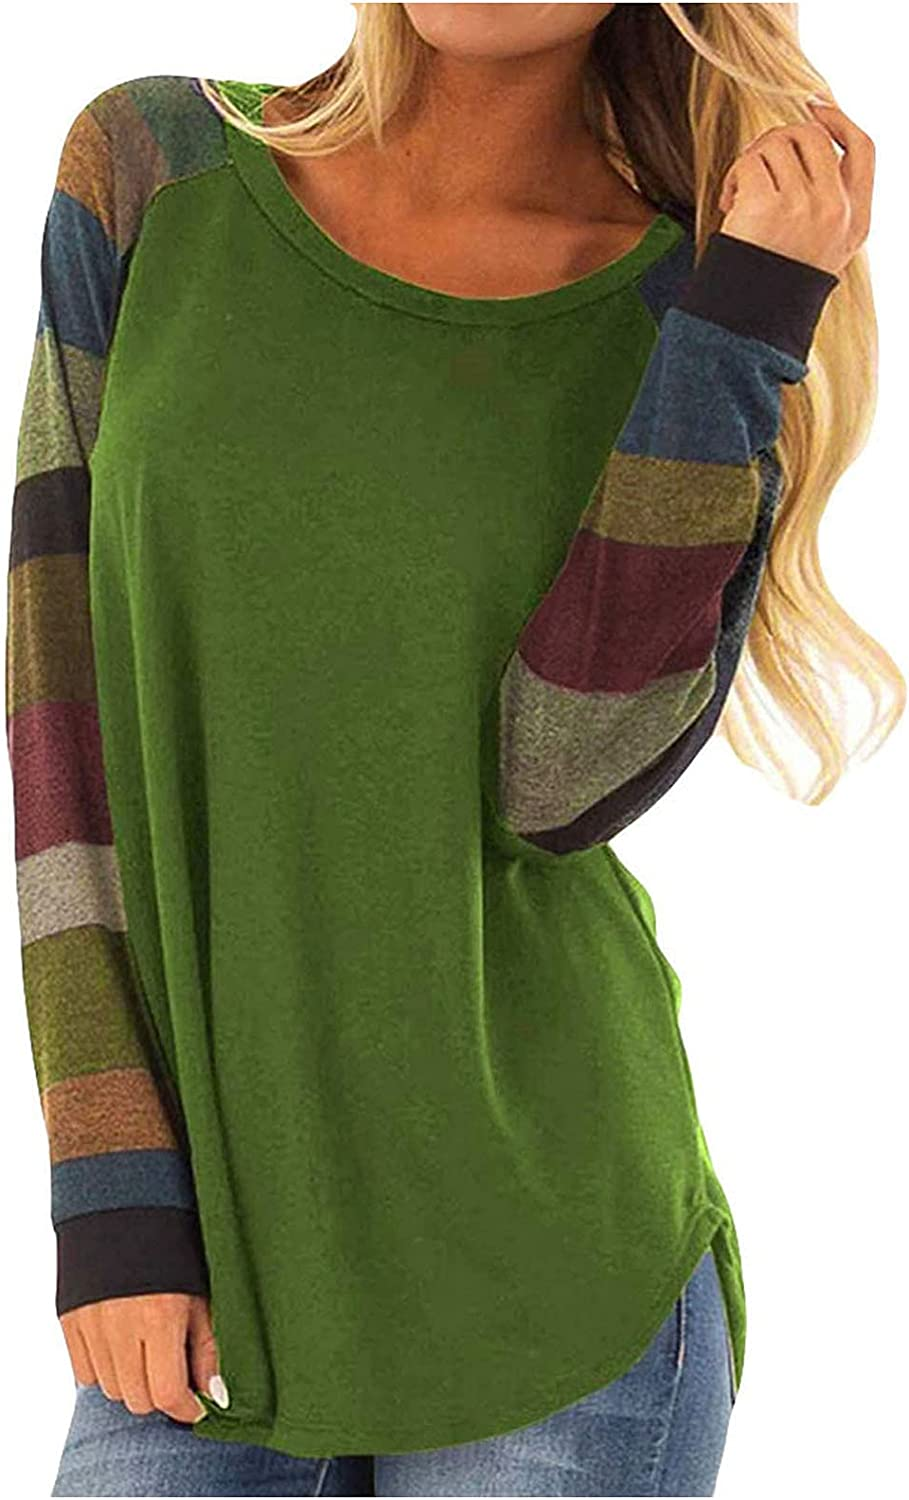 Womans Clothing Trending Fall Long Sleeve T Shirt Color Block Round Neck Loose Casual Side Split Tunic Tops Basic Tees